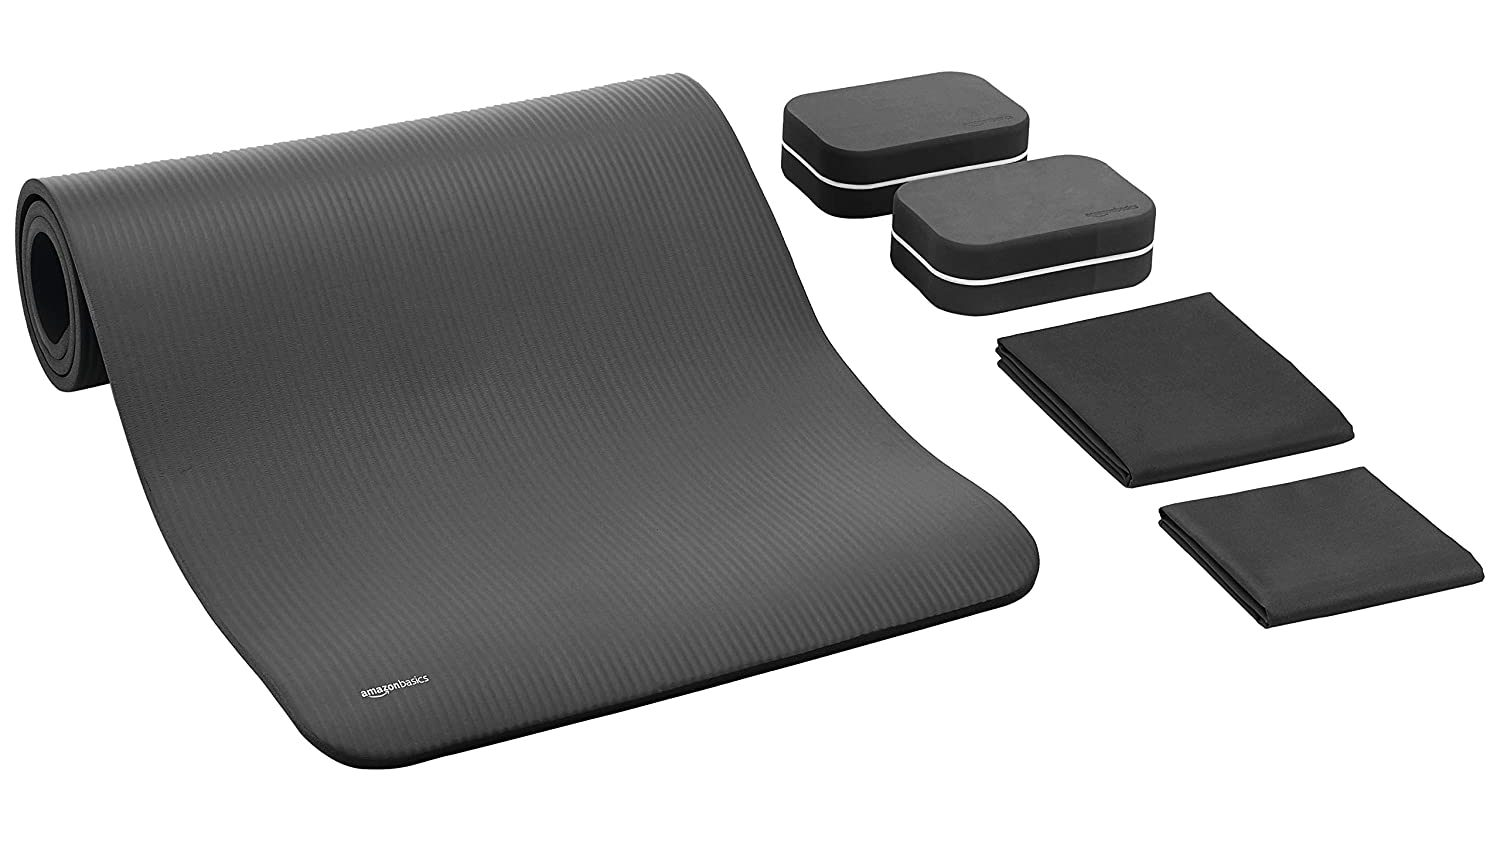 Amazon Basics 13mm Extra Thick Yoga and Exercise Mat with Carrying Strap